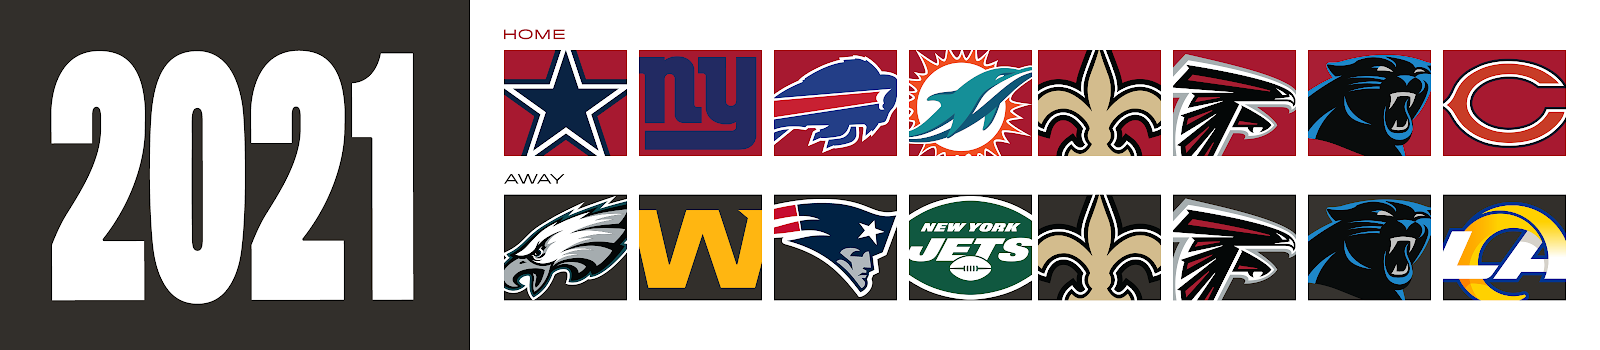 Tampa Bay Buccaneers   Future Opponents